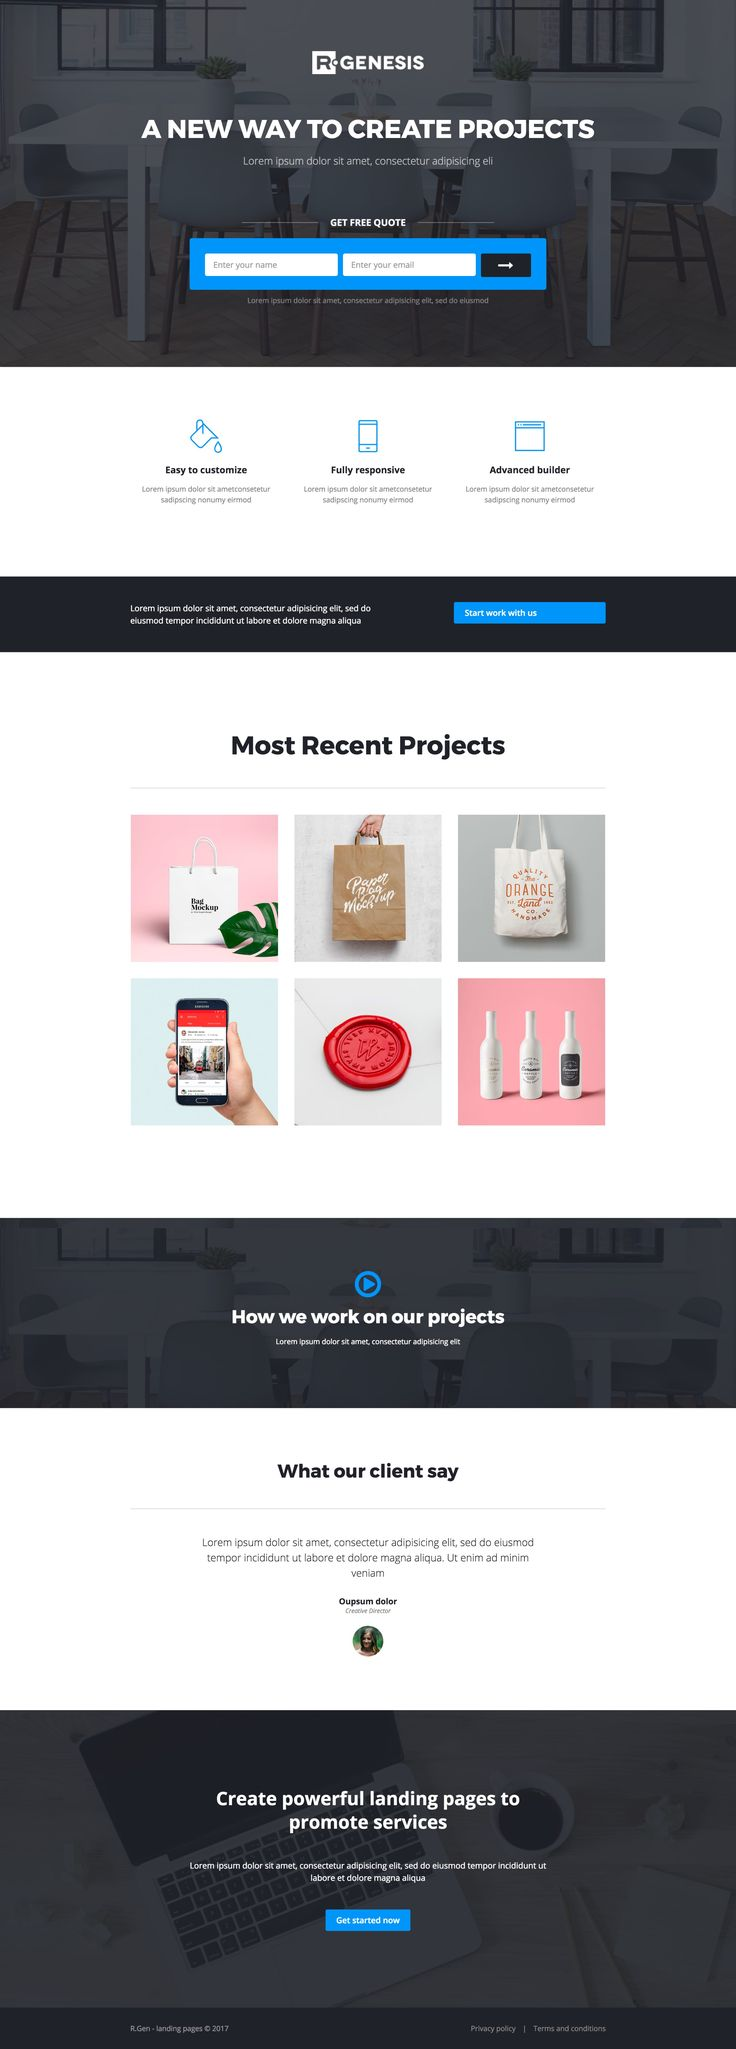 'LeadPack' is a bundle of 15 HTML Landing Page templates. Pictured here is my favorite layout called The Agency featuring a very clear lead capturing form above-the-fold. Other Landing Page layouts cover medical, travel, apps, books, portfolios, construction and even education layouts. What's great to know is there are over 50 modular 'block elements' that allow you to construct any sort of Landing Page you may need - all for only $14!